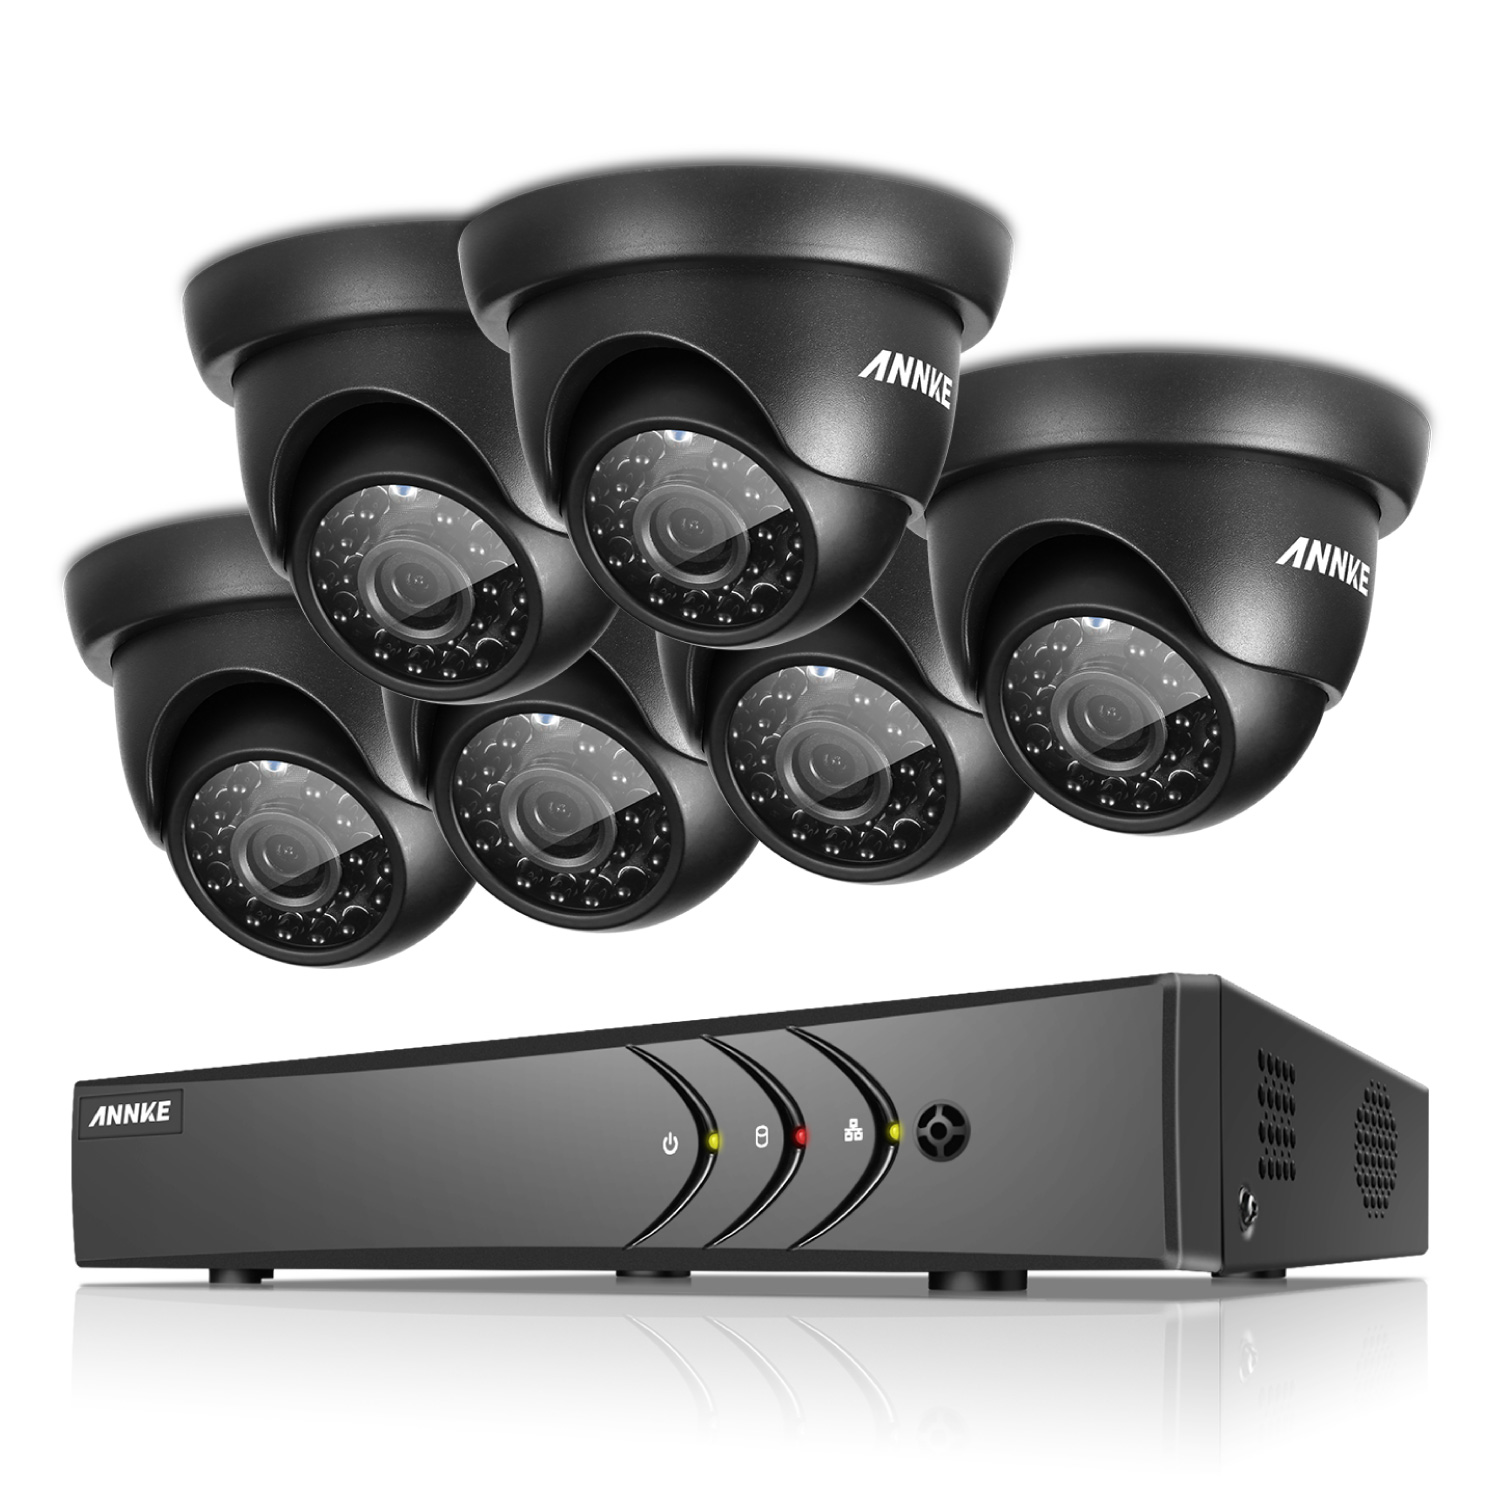 ANNKE 8CH 1080N CCTV DVR Security Camera System and 6Pcs 720P Night Vision Surveillance Cameras(Hard Drive Capacity is optional:0-NO HDD,1-1TB HDD)